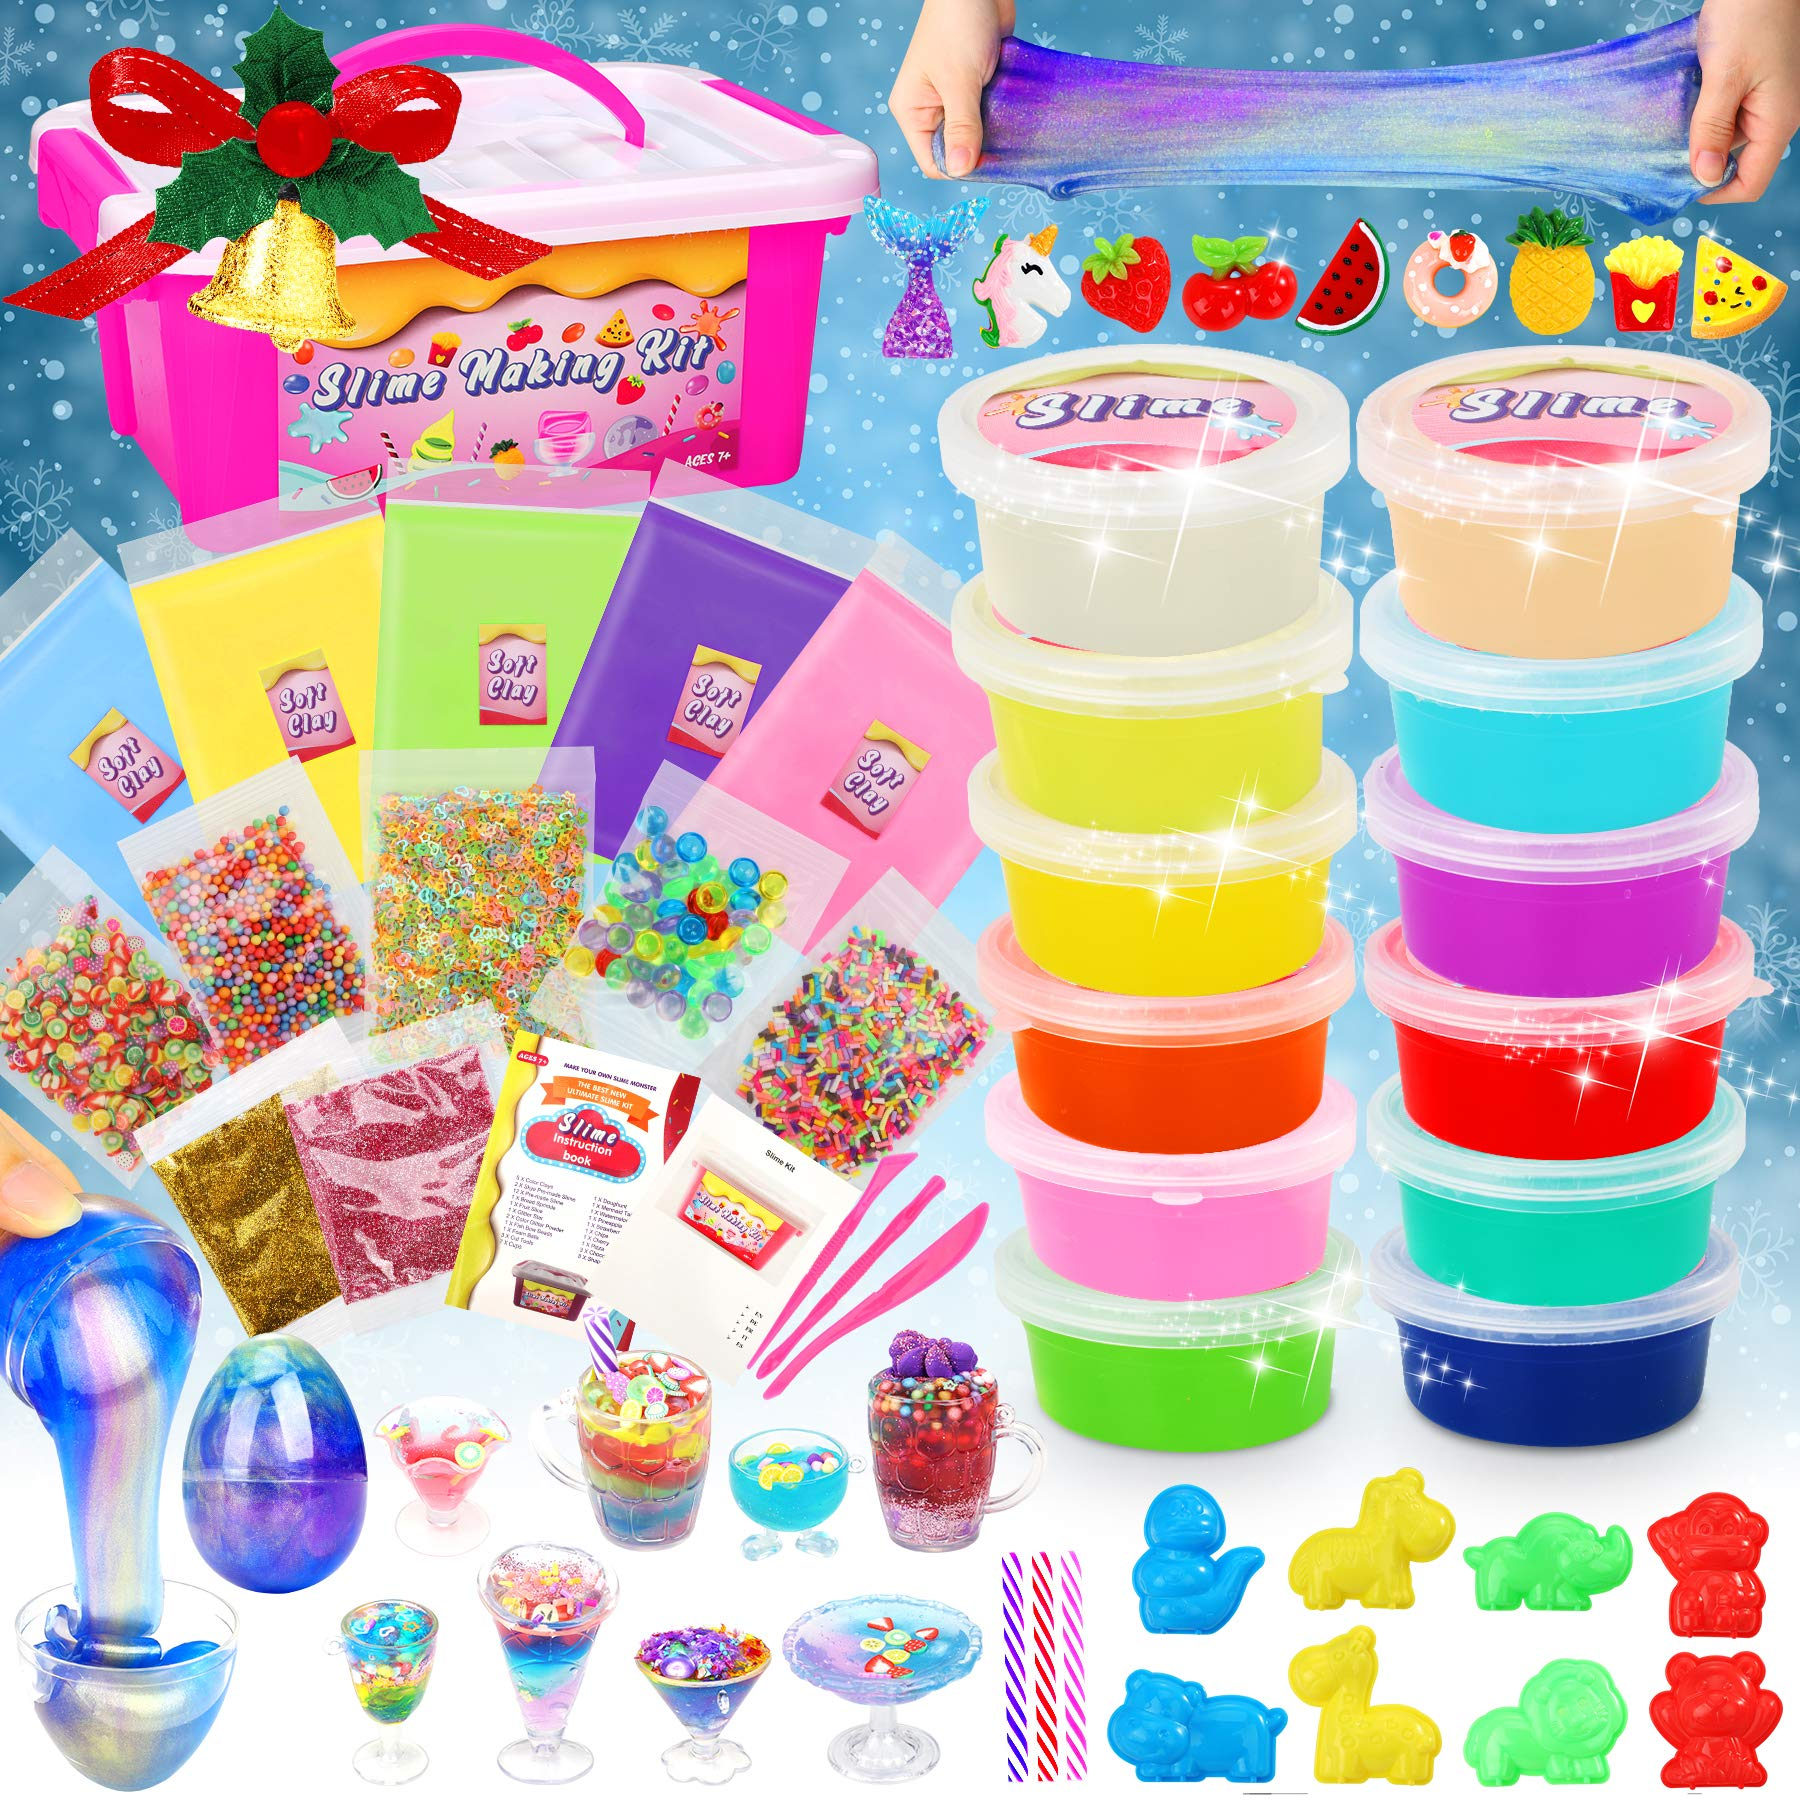 Dookey DIY Fluffy Slime Kit, Crystal Slime Set with Galaxy Eggs Slime, Clear Slime Making Kit with Animal Molds Slime Cups for Girls Boys aged 6+Toys Game Holiday Art Craft ( 12+5 colors)